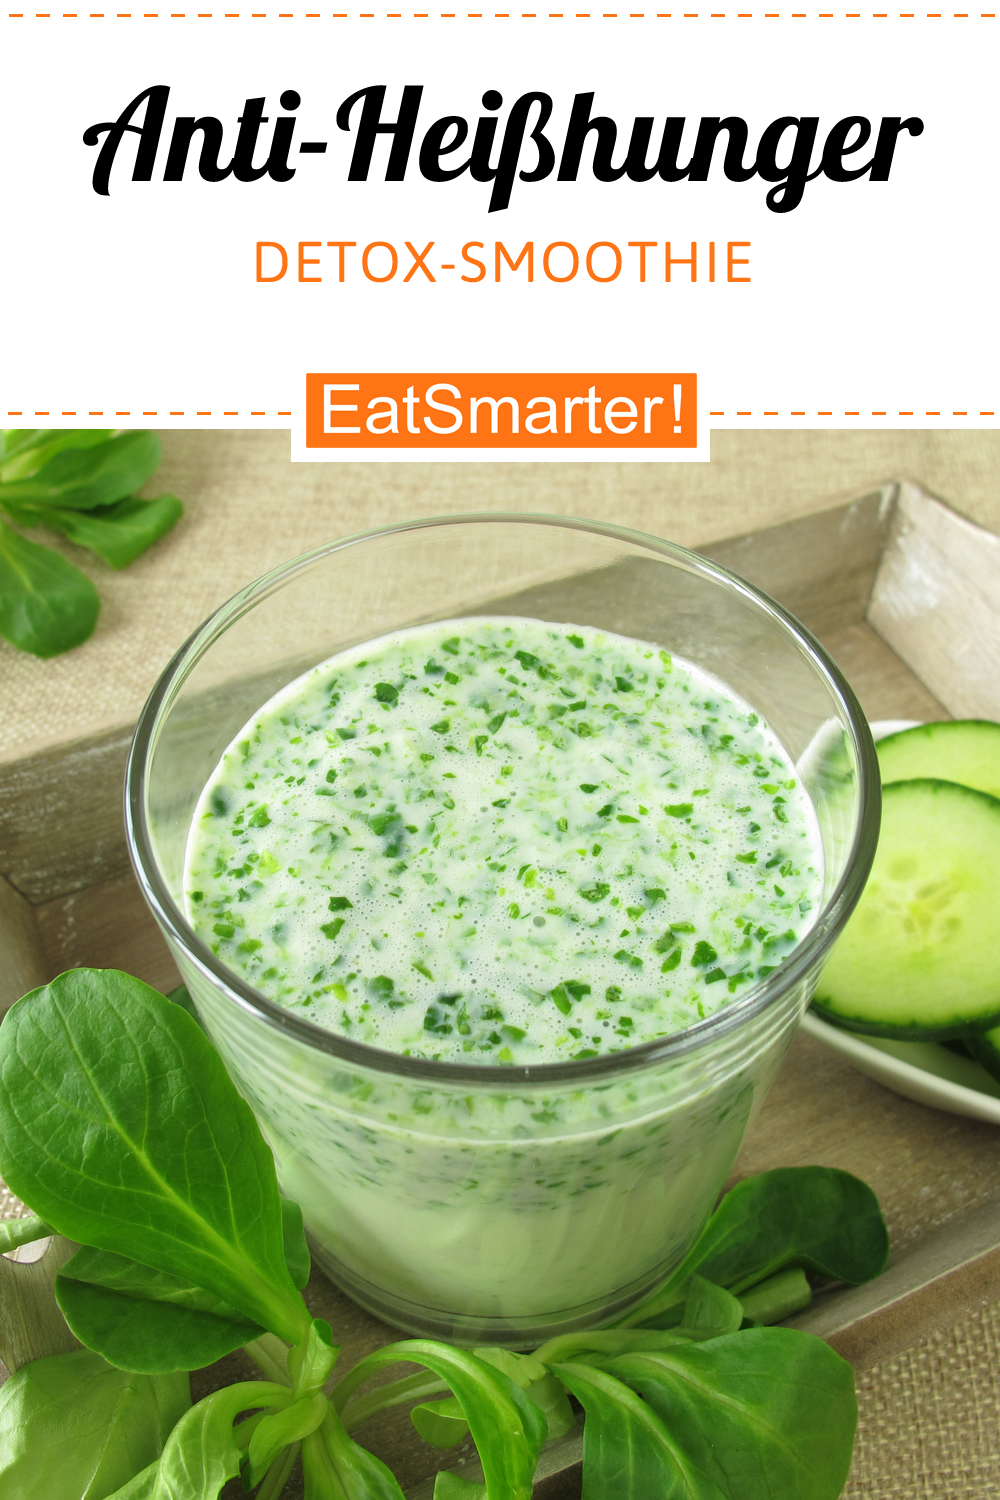 Anti-Heißhunger – Detox-Smoothie